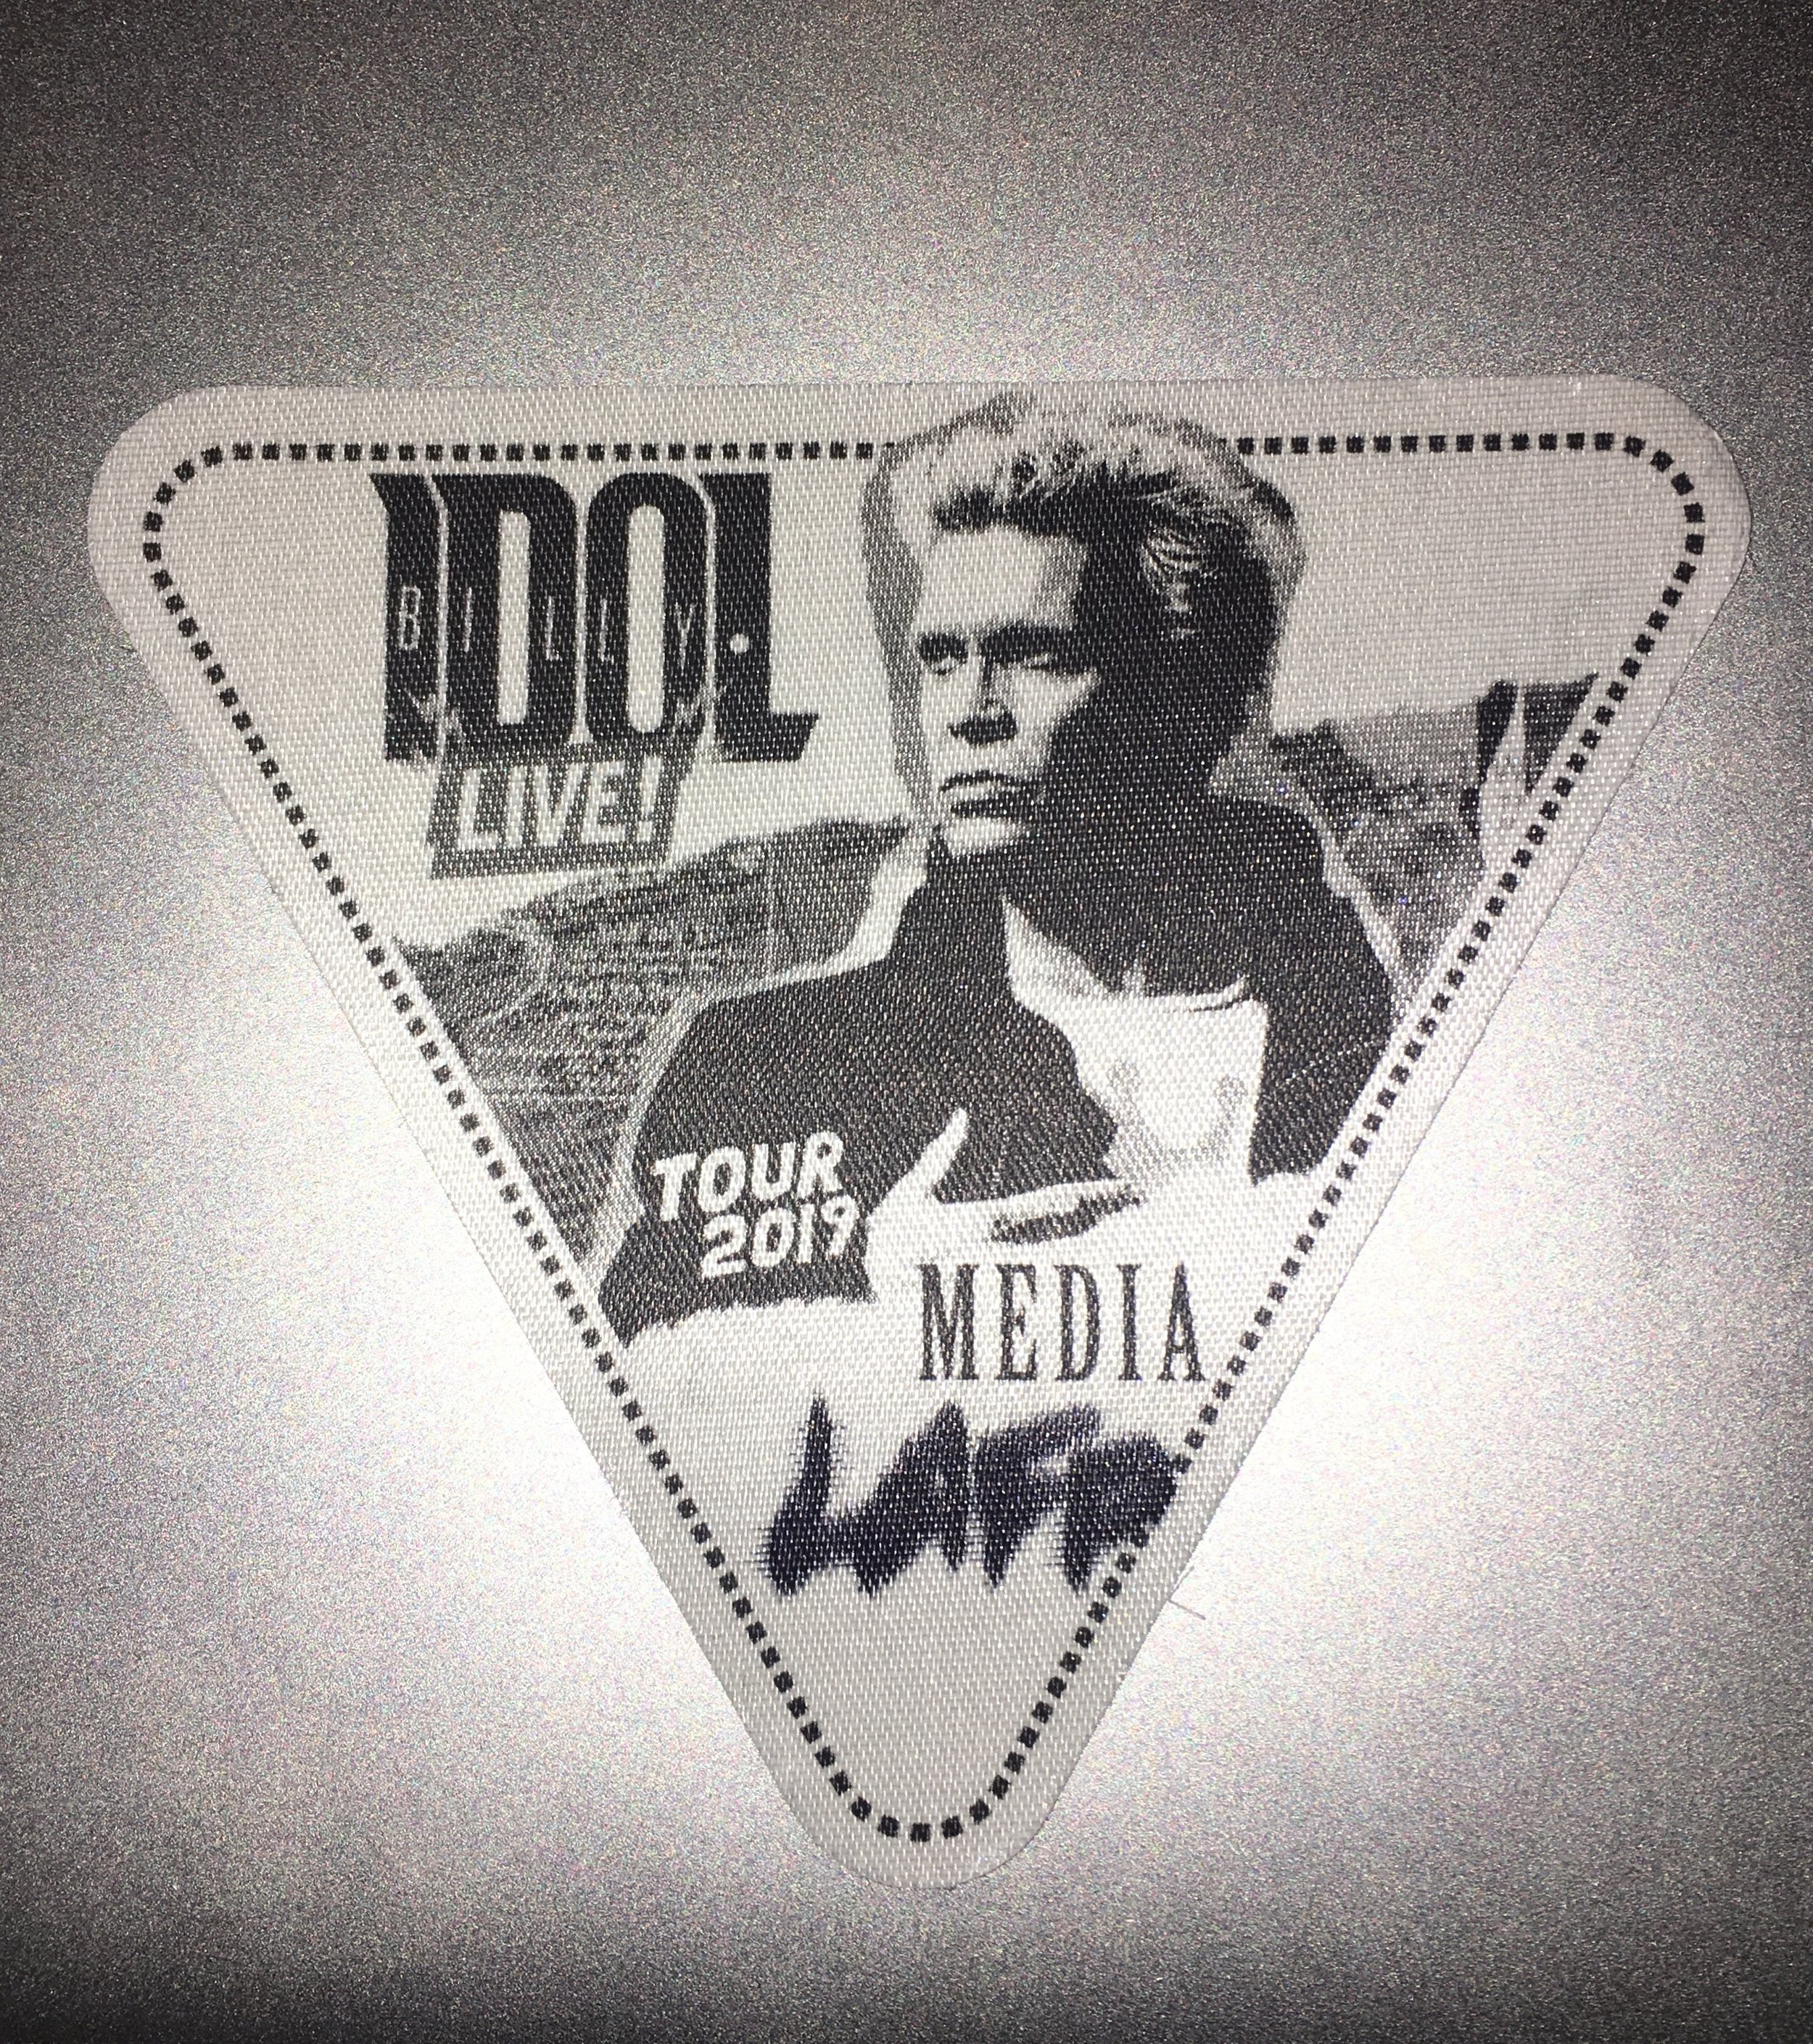 Billy Idol Pass.jpg